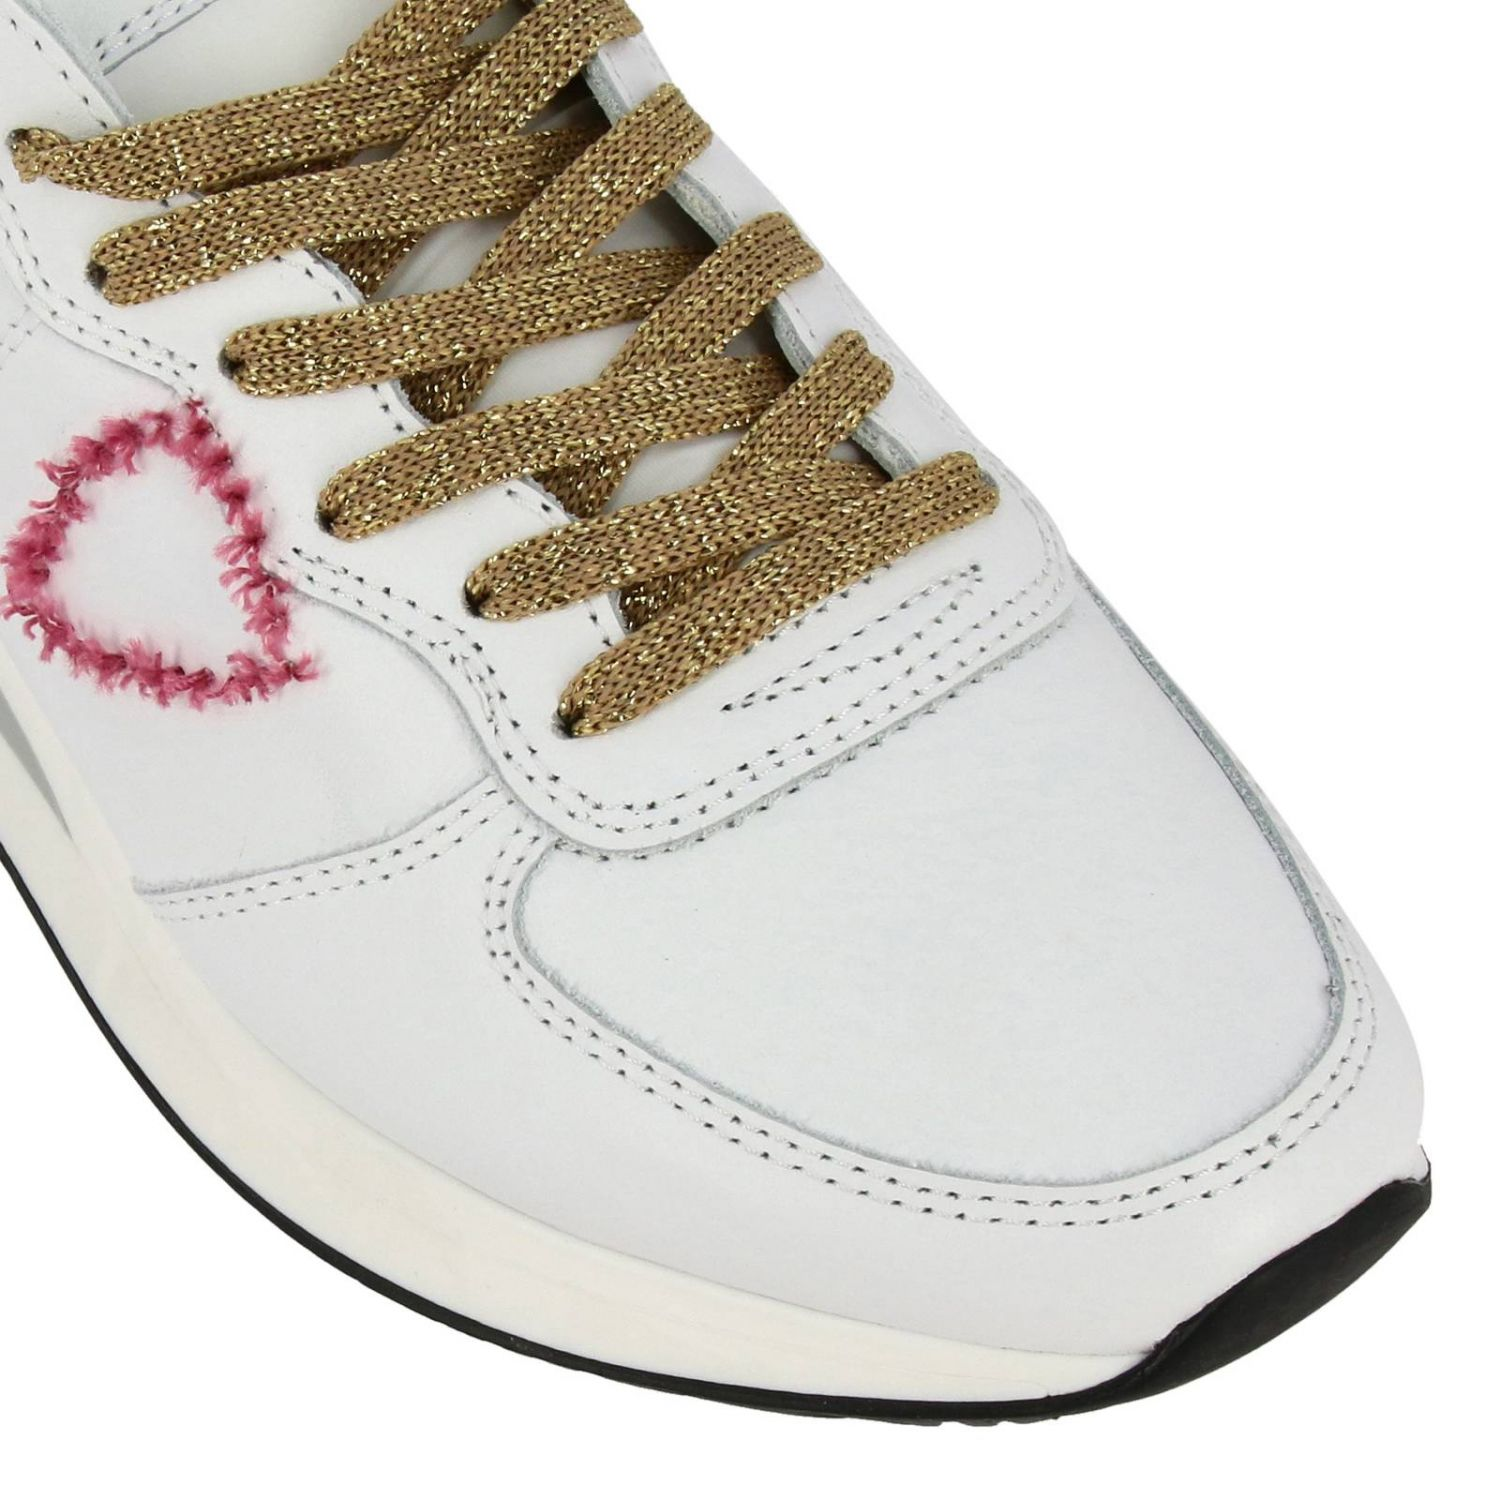 Shoes women Philippe Model white 3